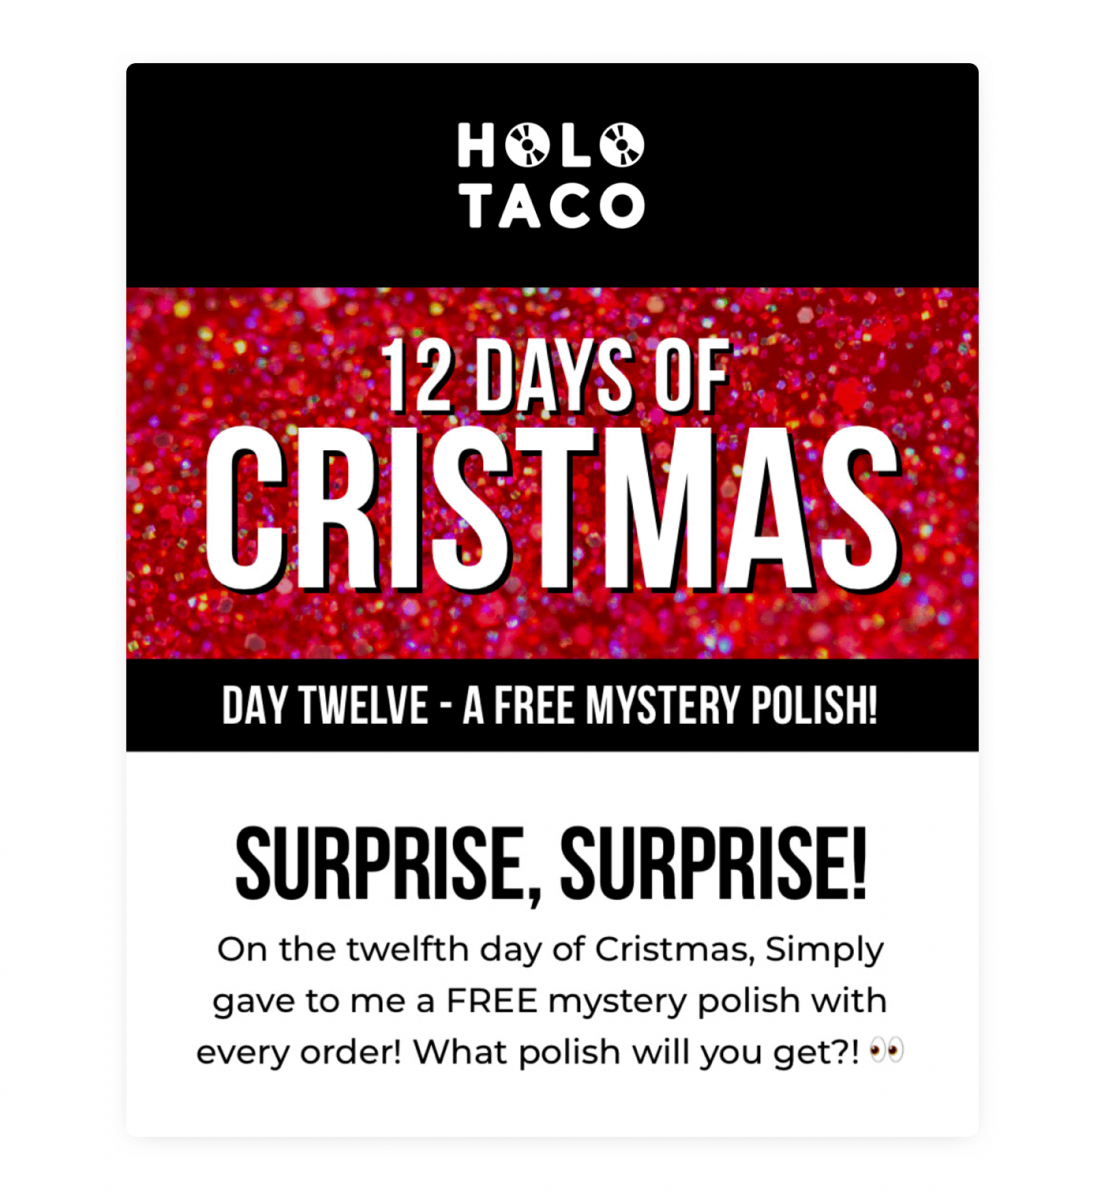 An example of effective customer retention strategy from Holo Taco